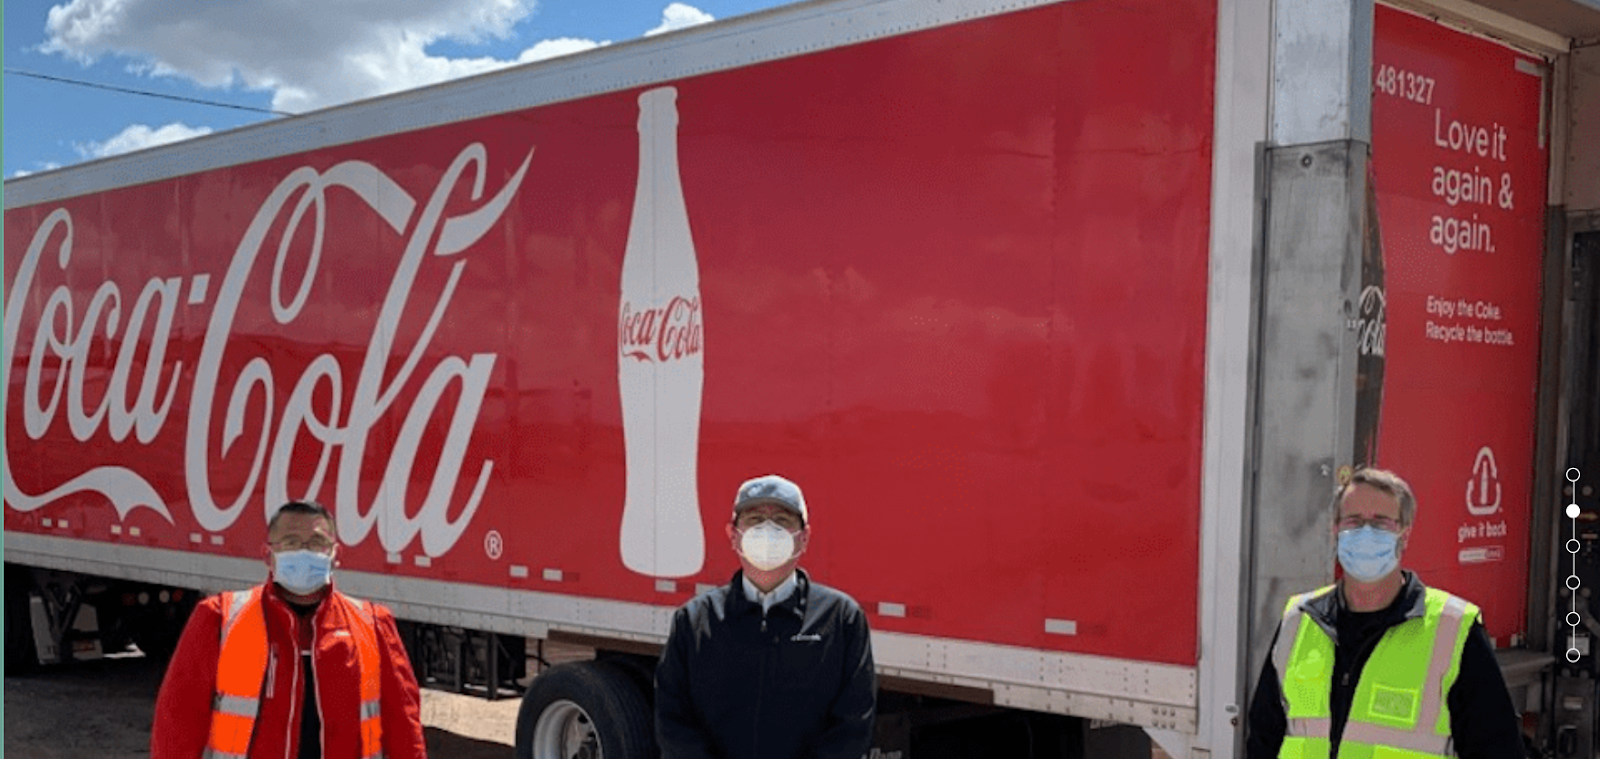 3 people standing in front of a Coca-Cola truck